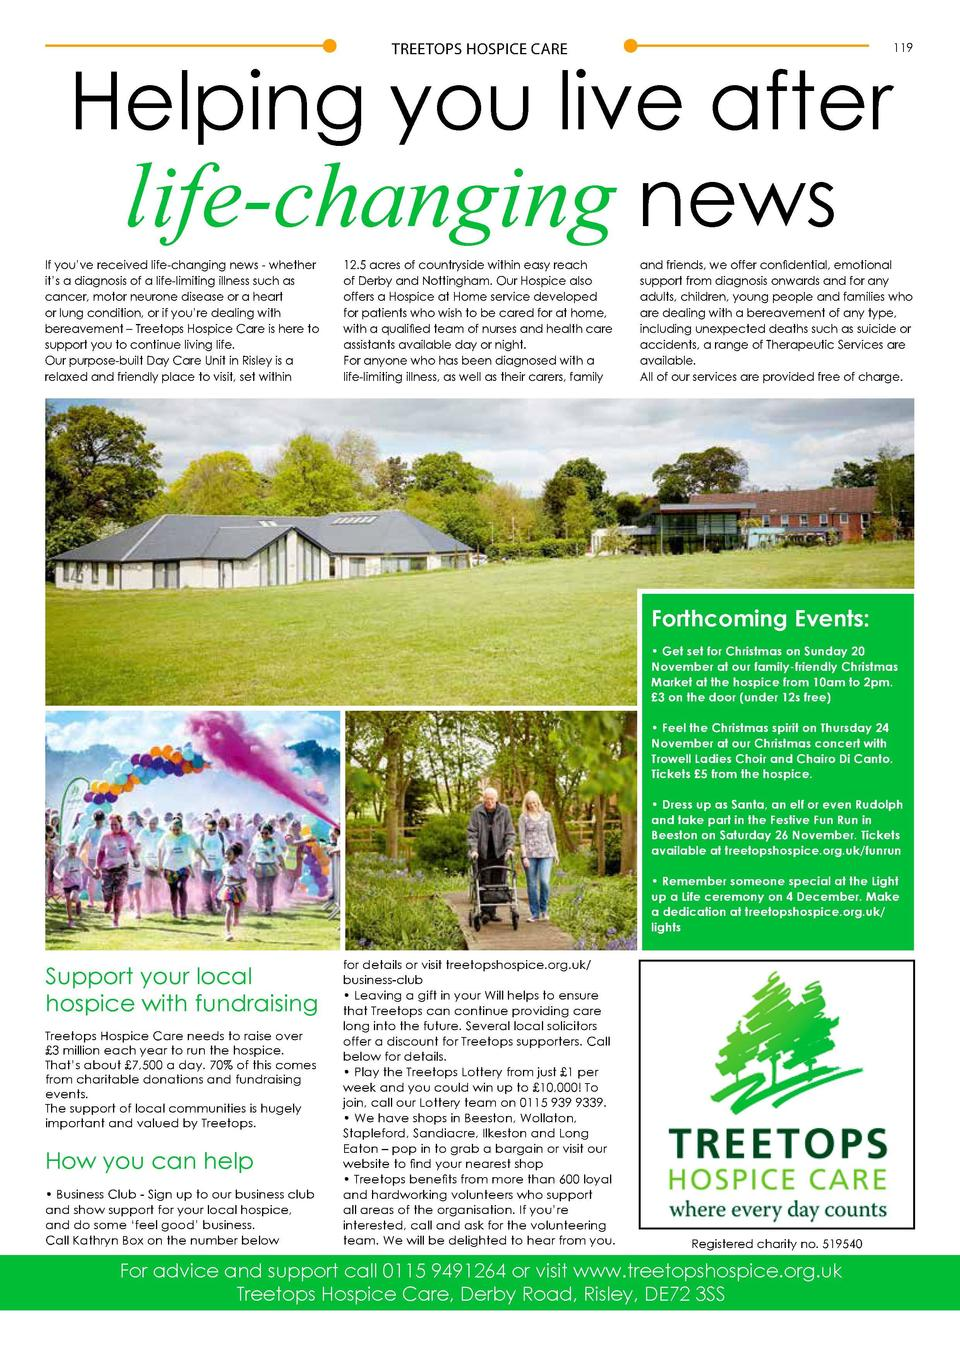 TREETOPS HOSPICE CARE  Helping you live after life-changing news If you   ve received life-changing news - whether it   s ...